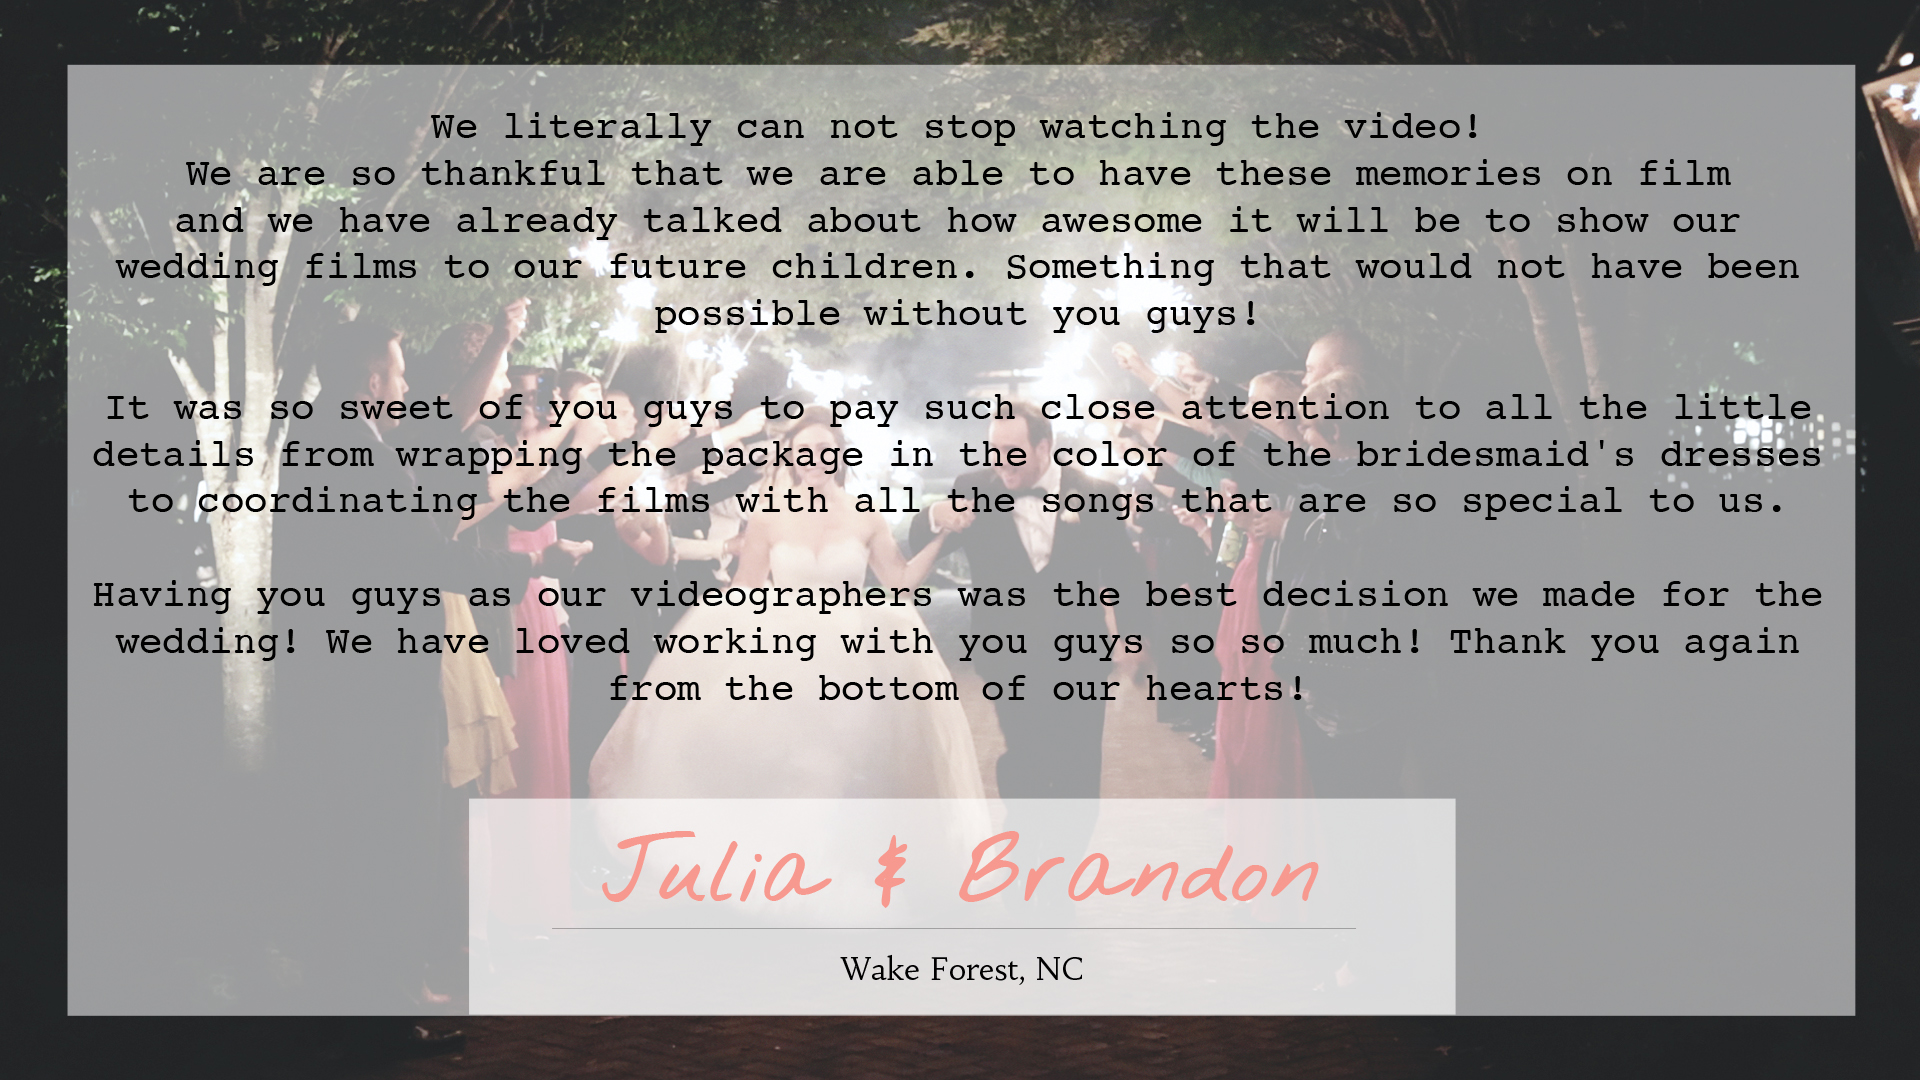 julia and brandon testimonial.jpg